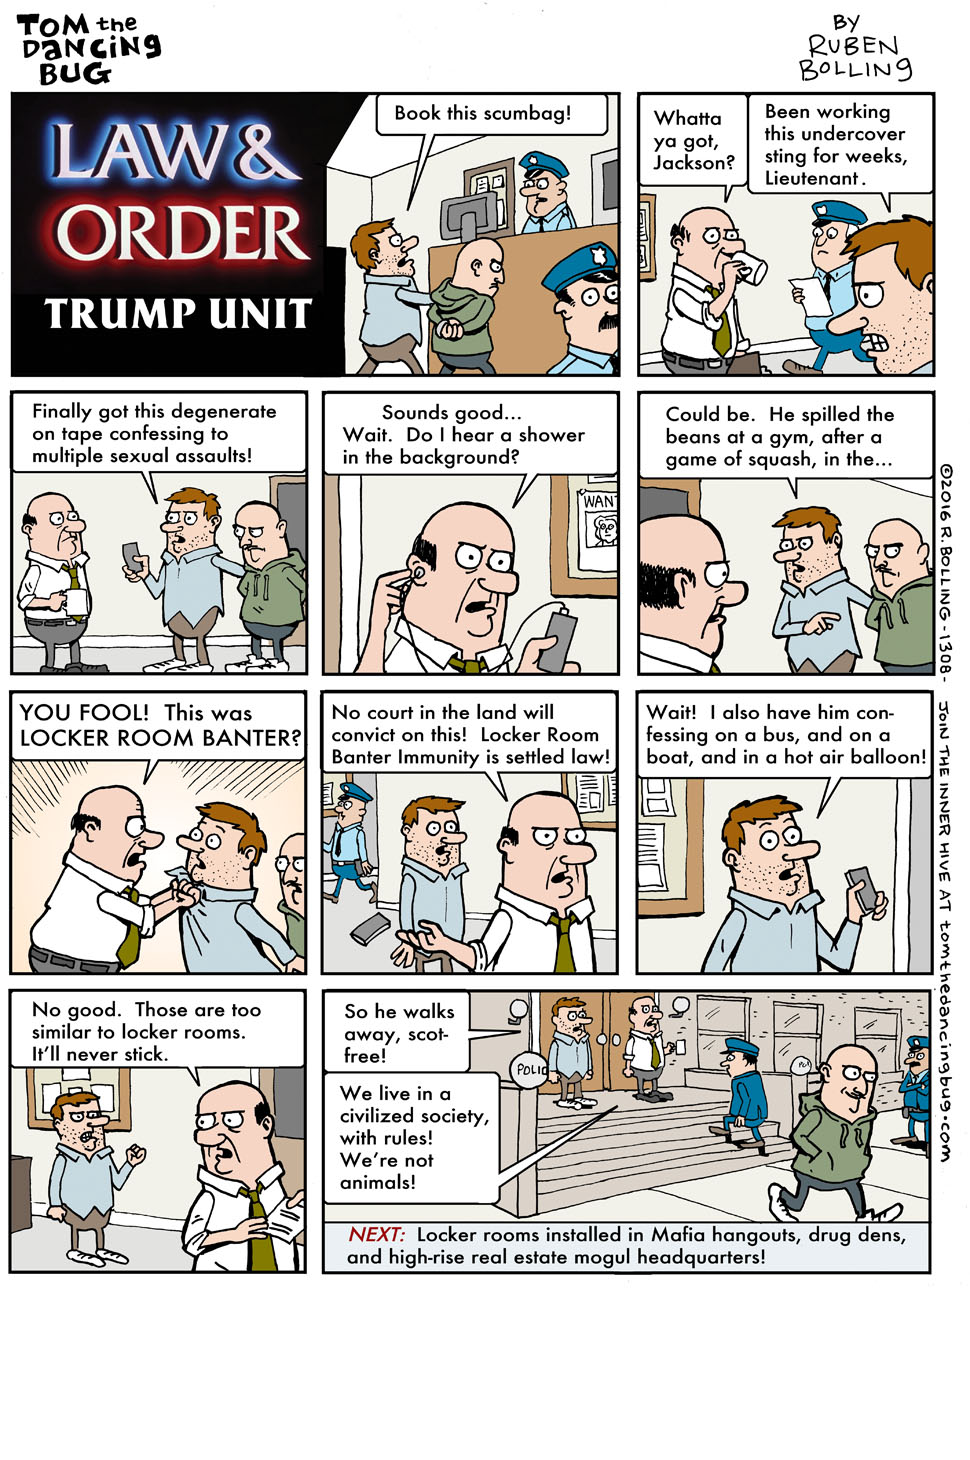 IMAGE(http://media.boingboing.net/wp-content/uploads/2016/10/1308cbCOMIC-law-order-trump-unit.jpg)